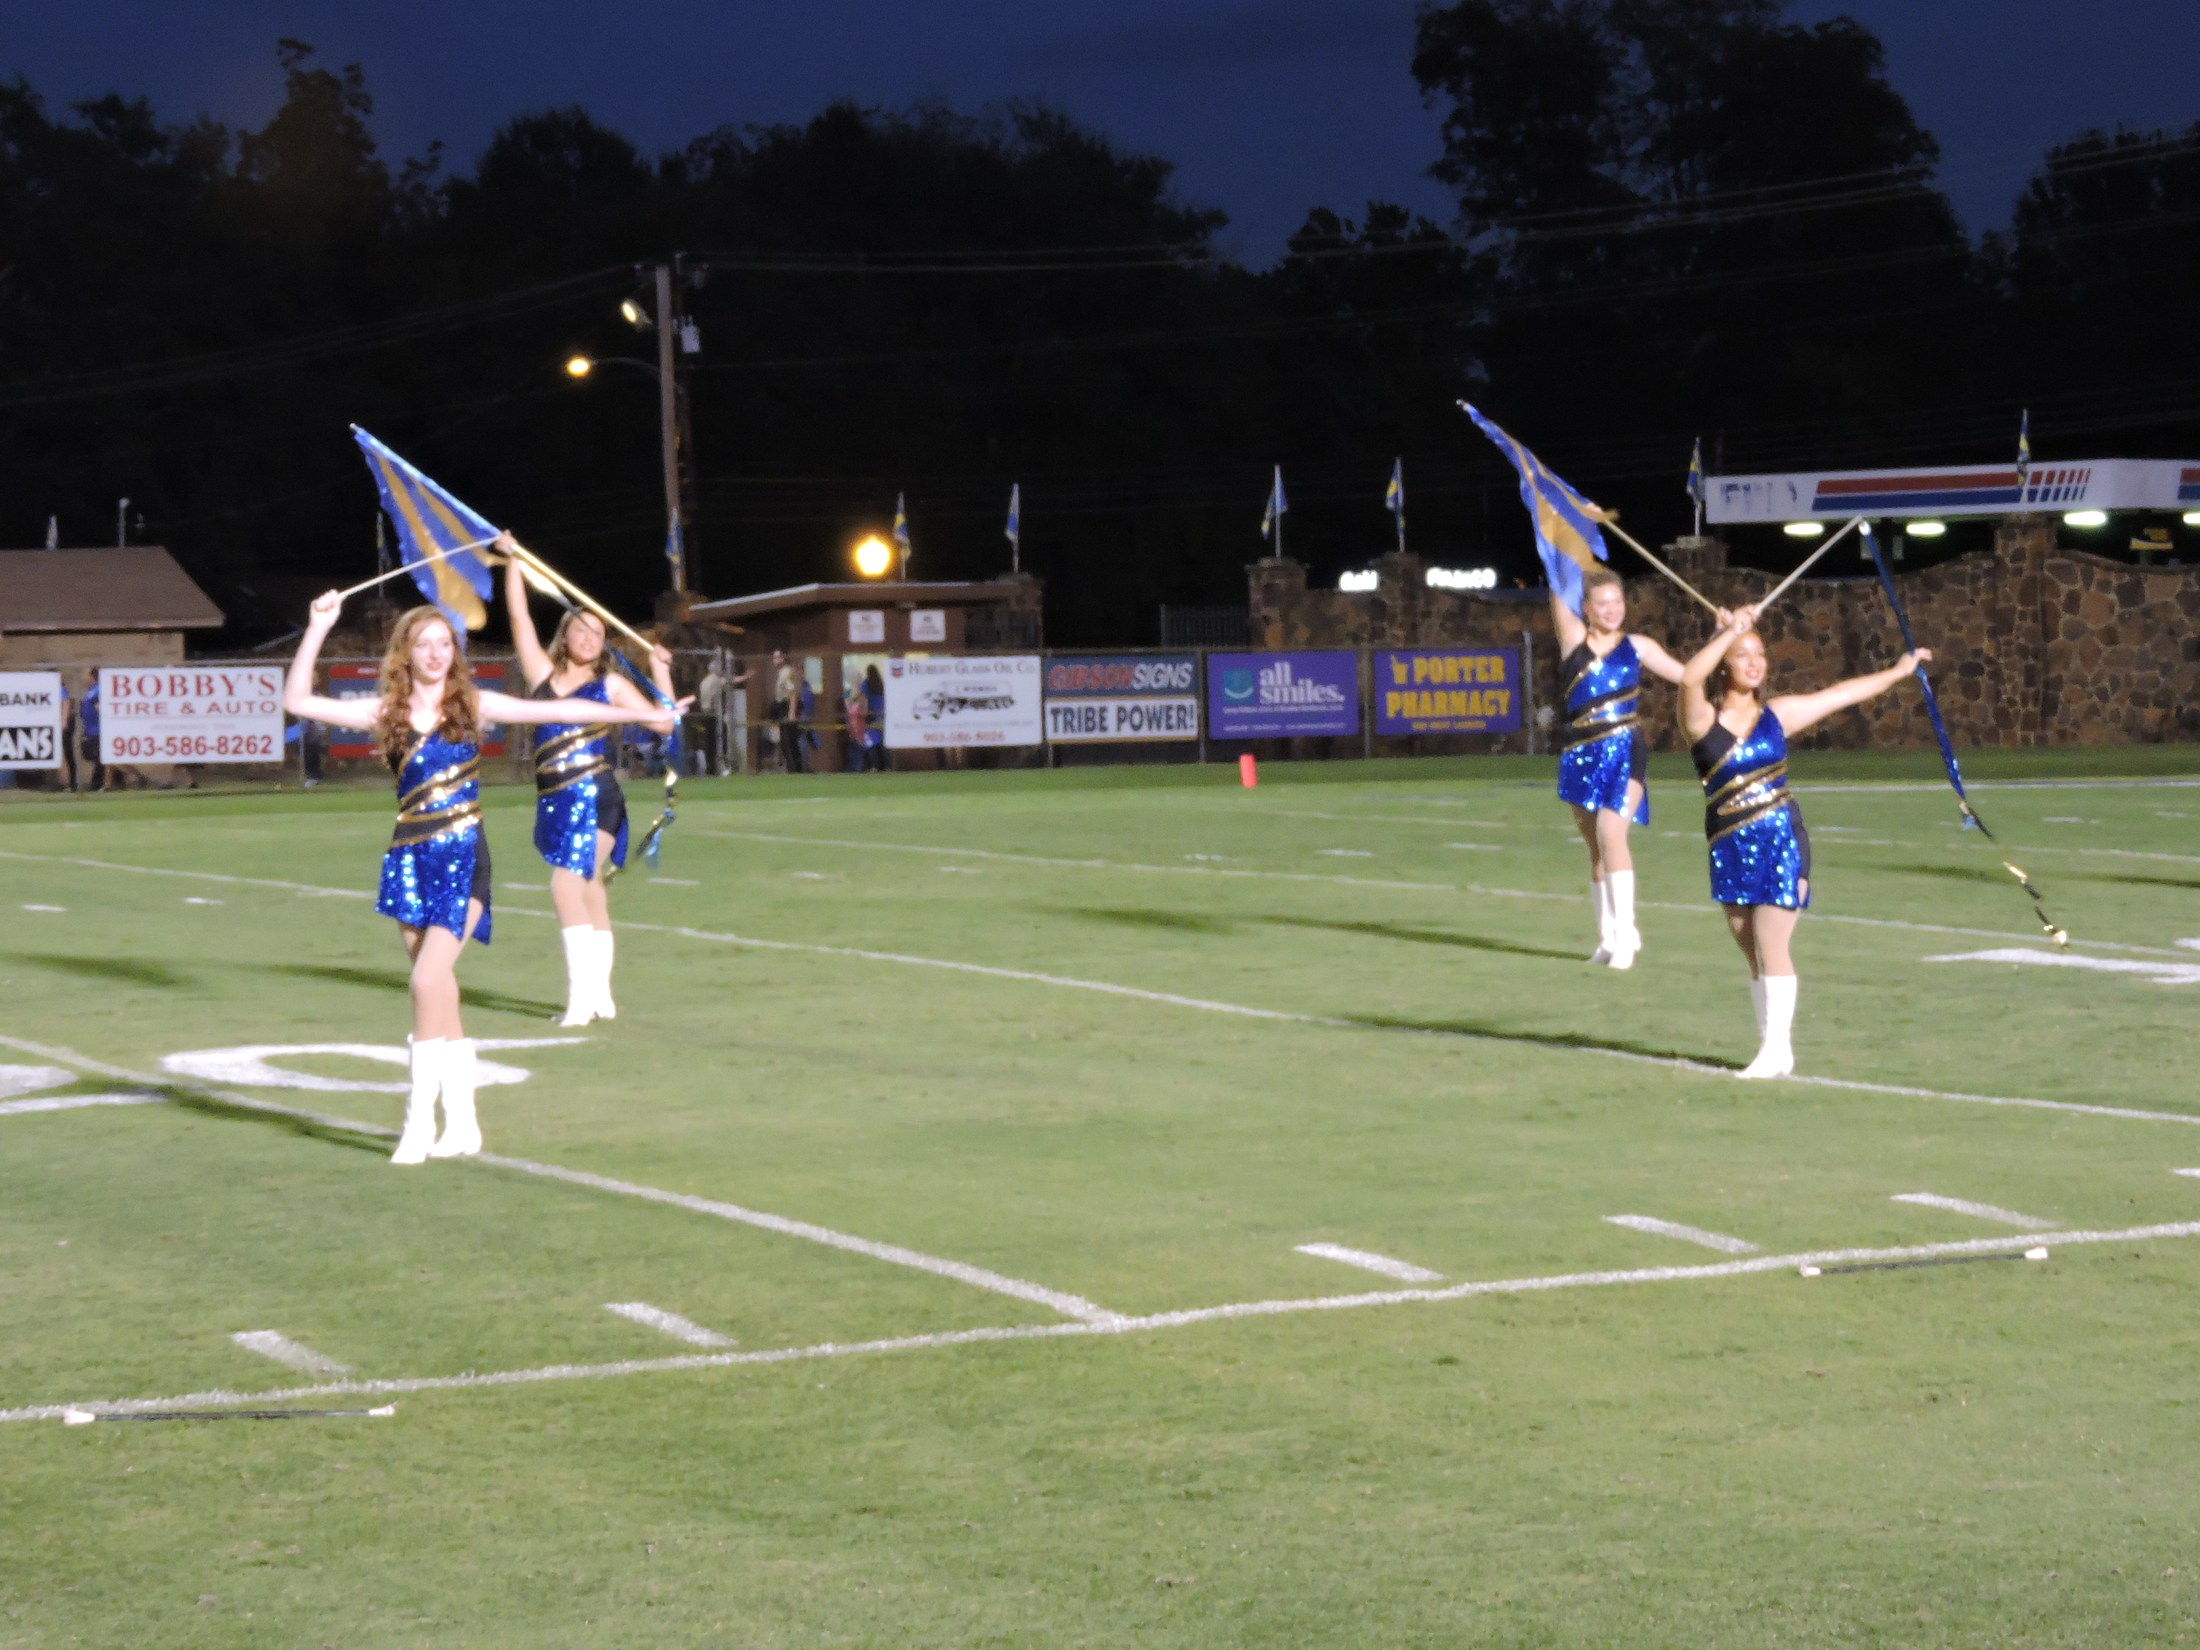 twirlers on the field